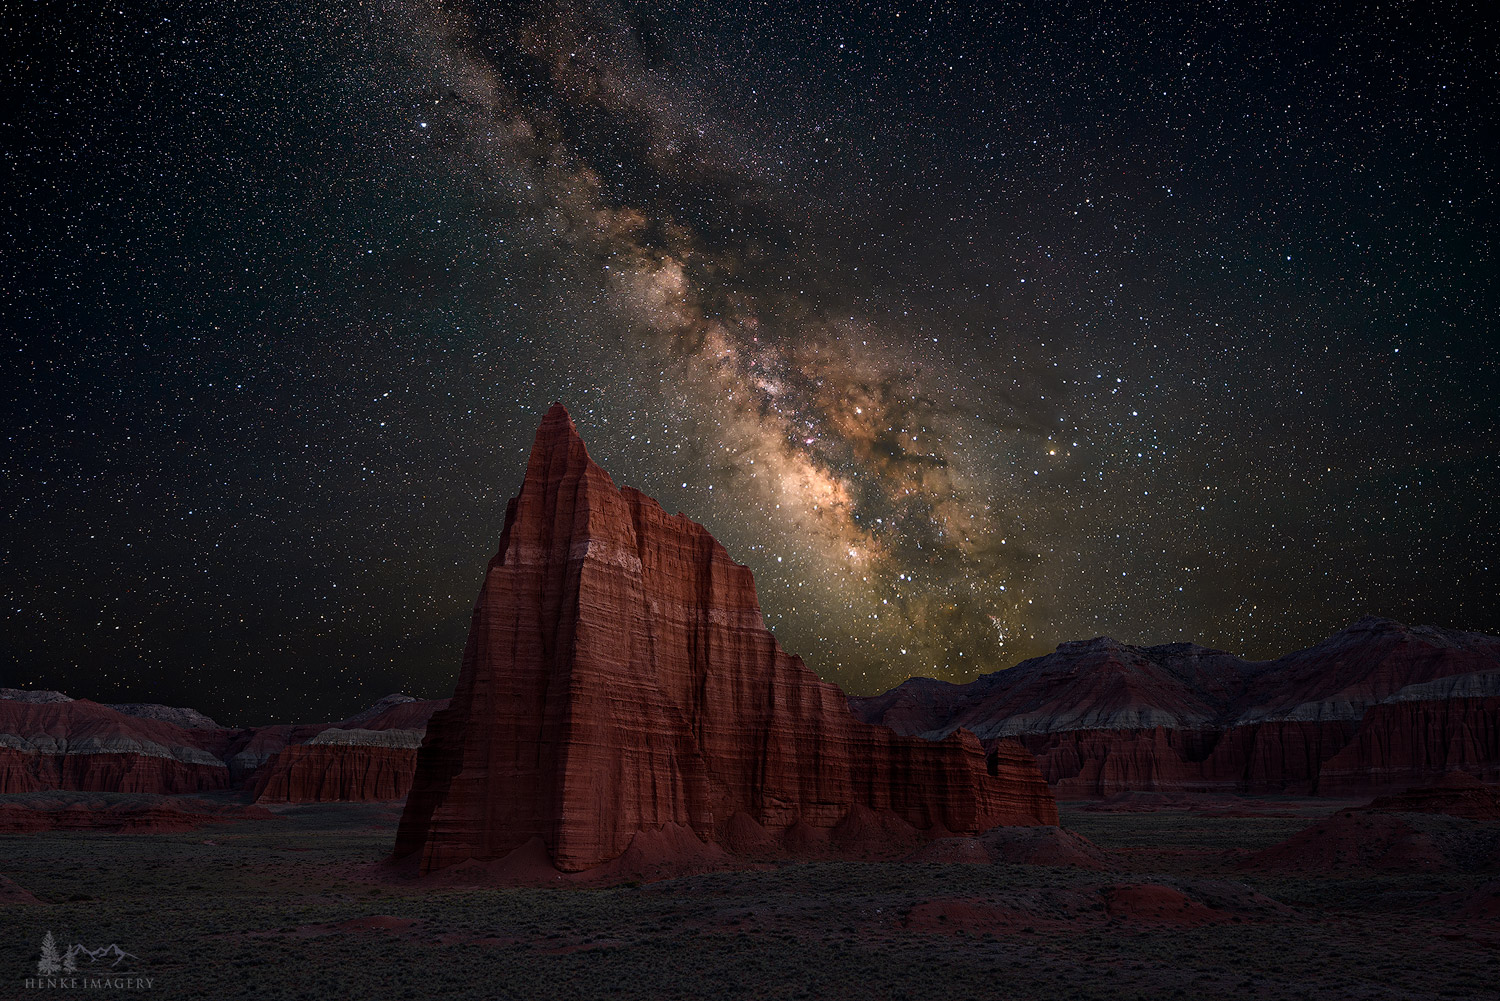 This is one of those special evenings at Capitol Reef Nat'l Park when the night sky was truly displaying its glory. I certainly...